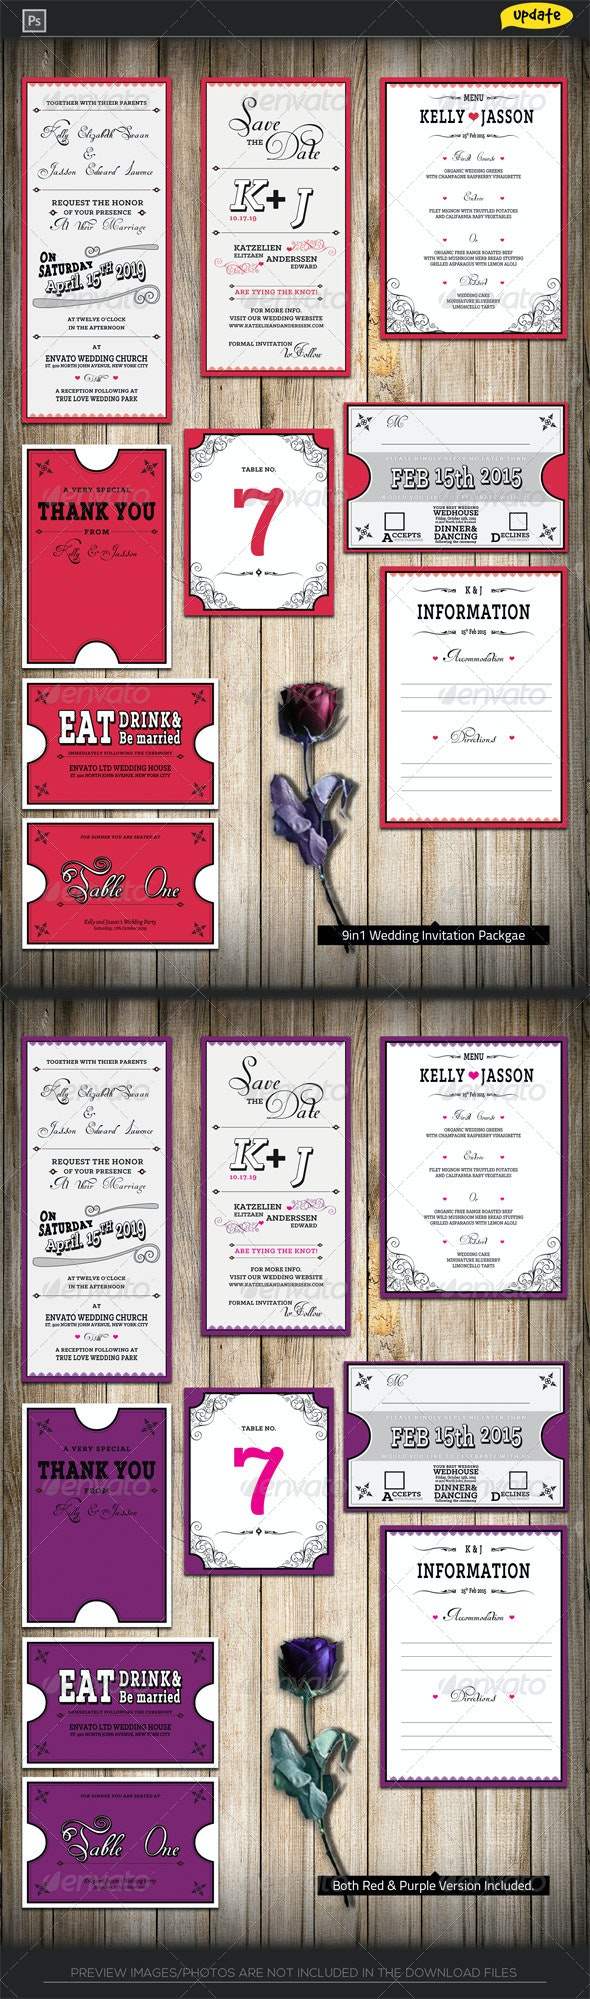 Wedding Invitation Package - Classic Red - Weddings Cards & Invites